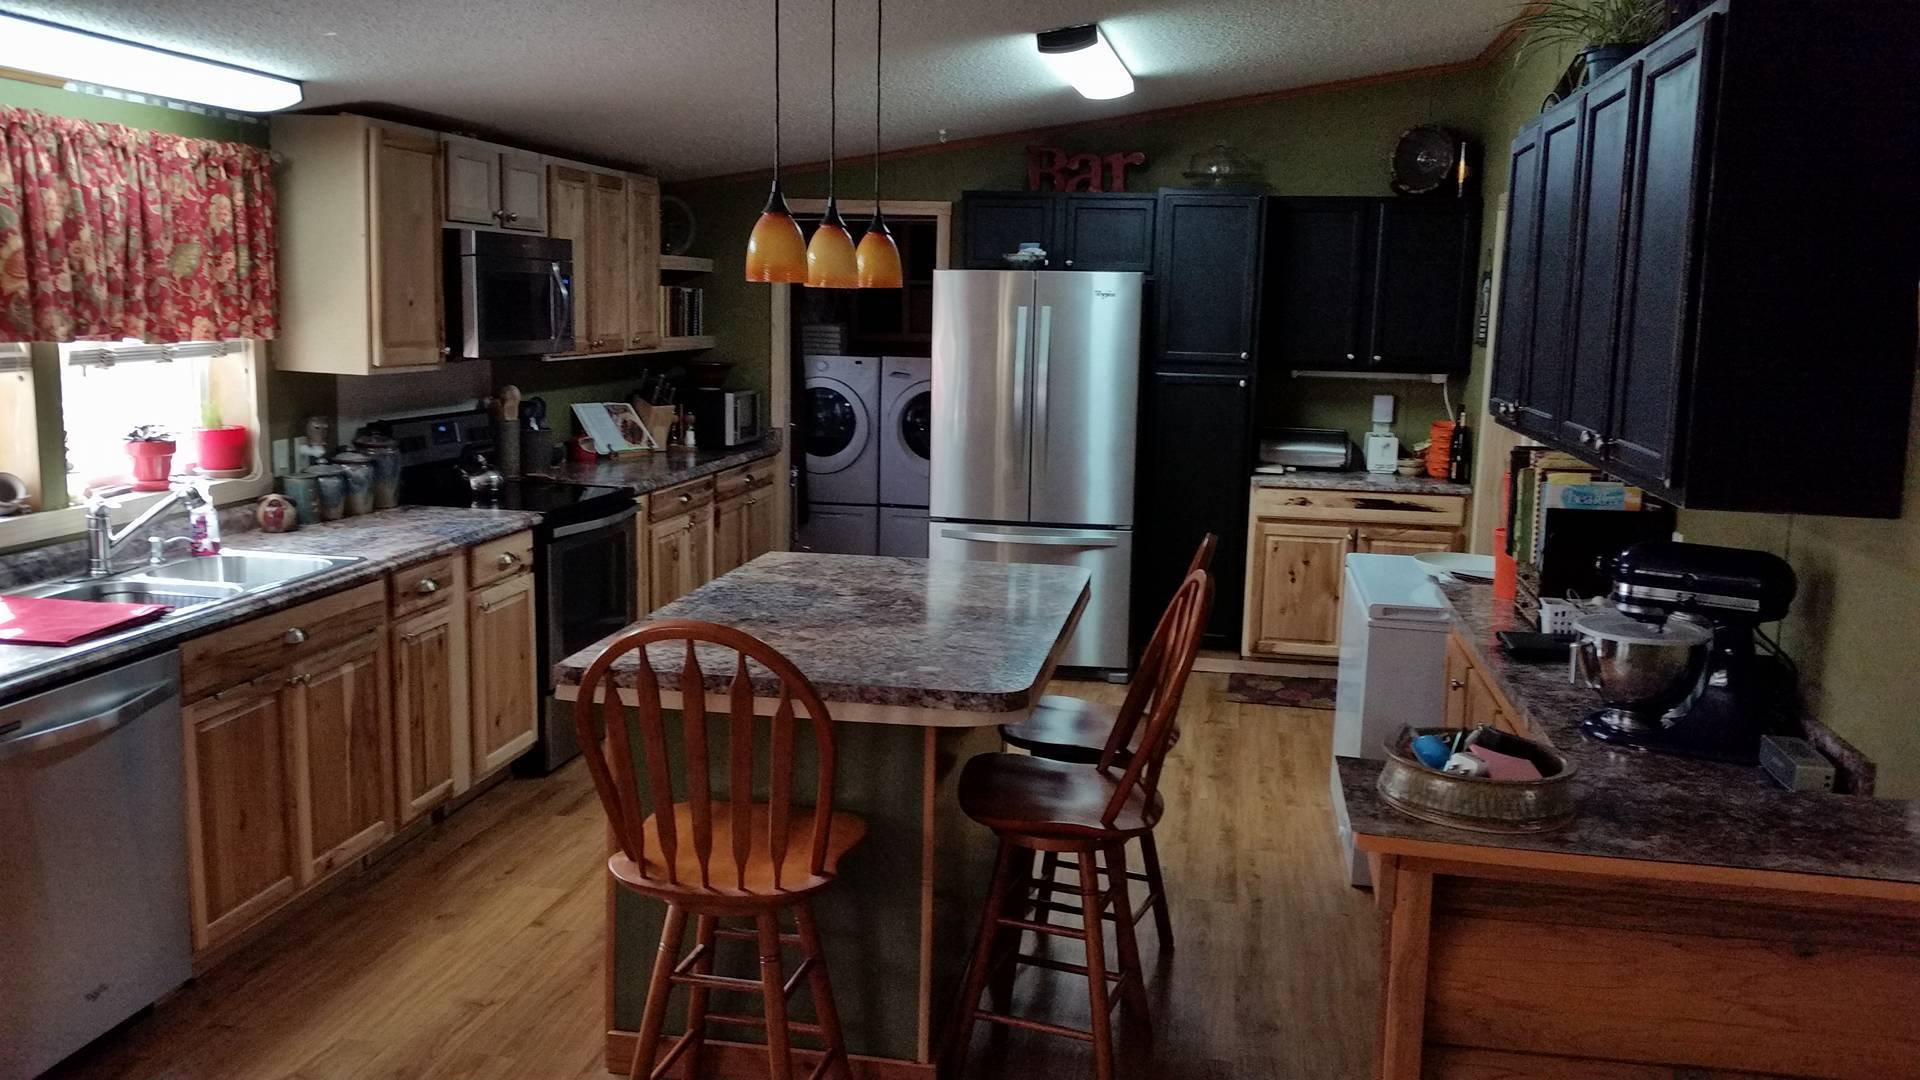 Kitchen With Stone Counter Tops And Black Cabinets On One Side And Wood Cabinets On The Other.